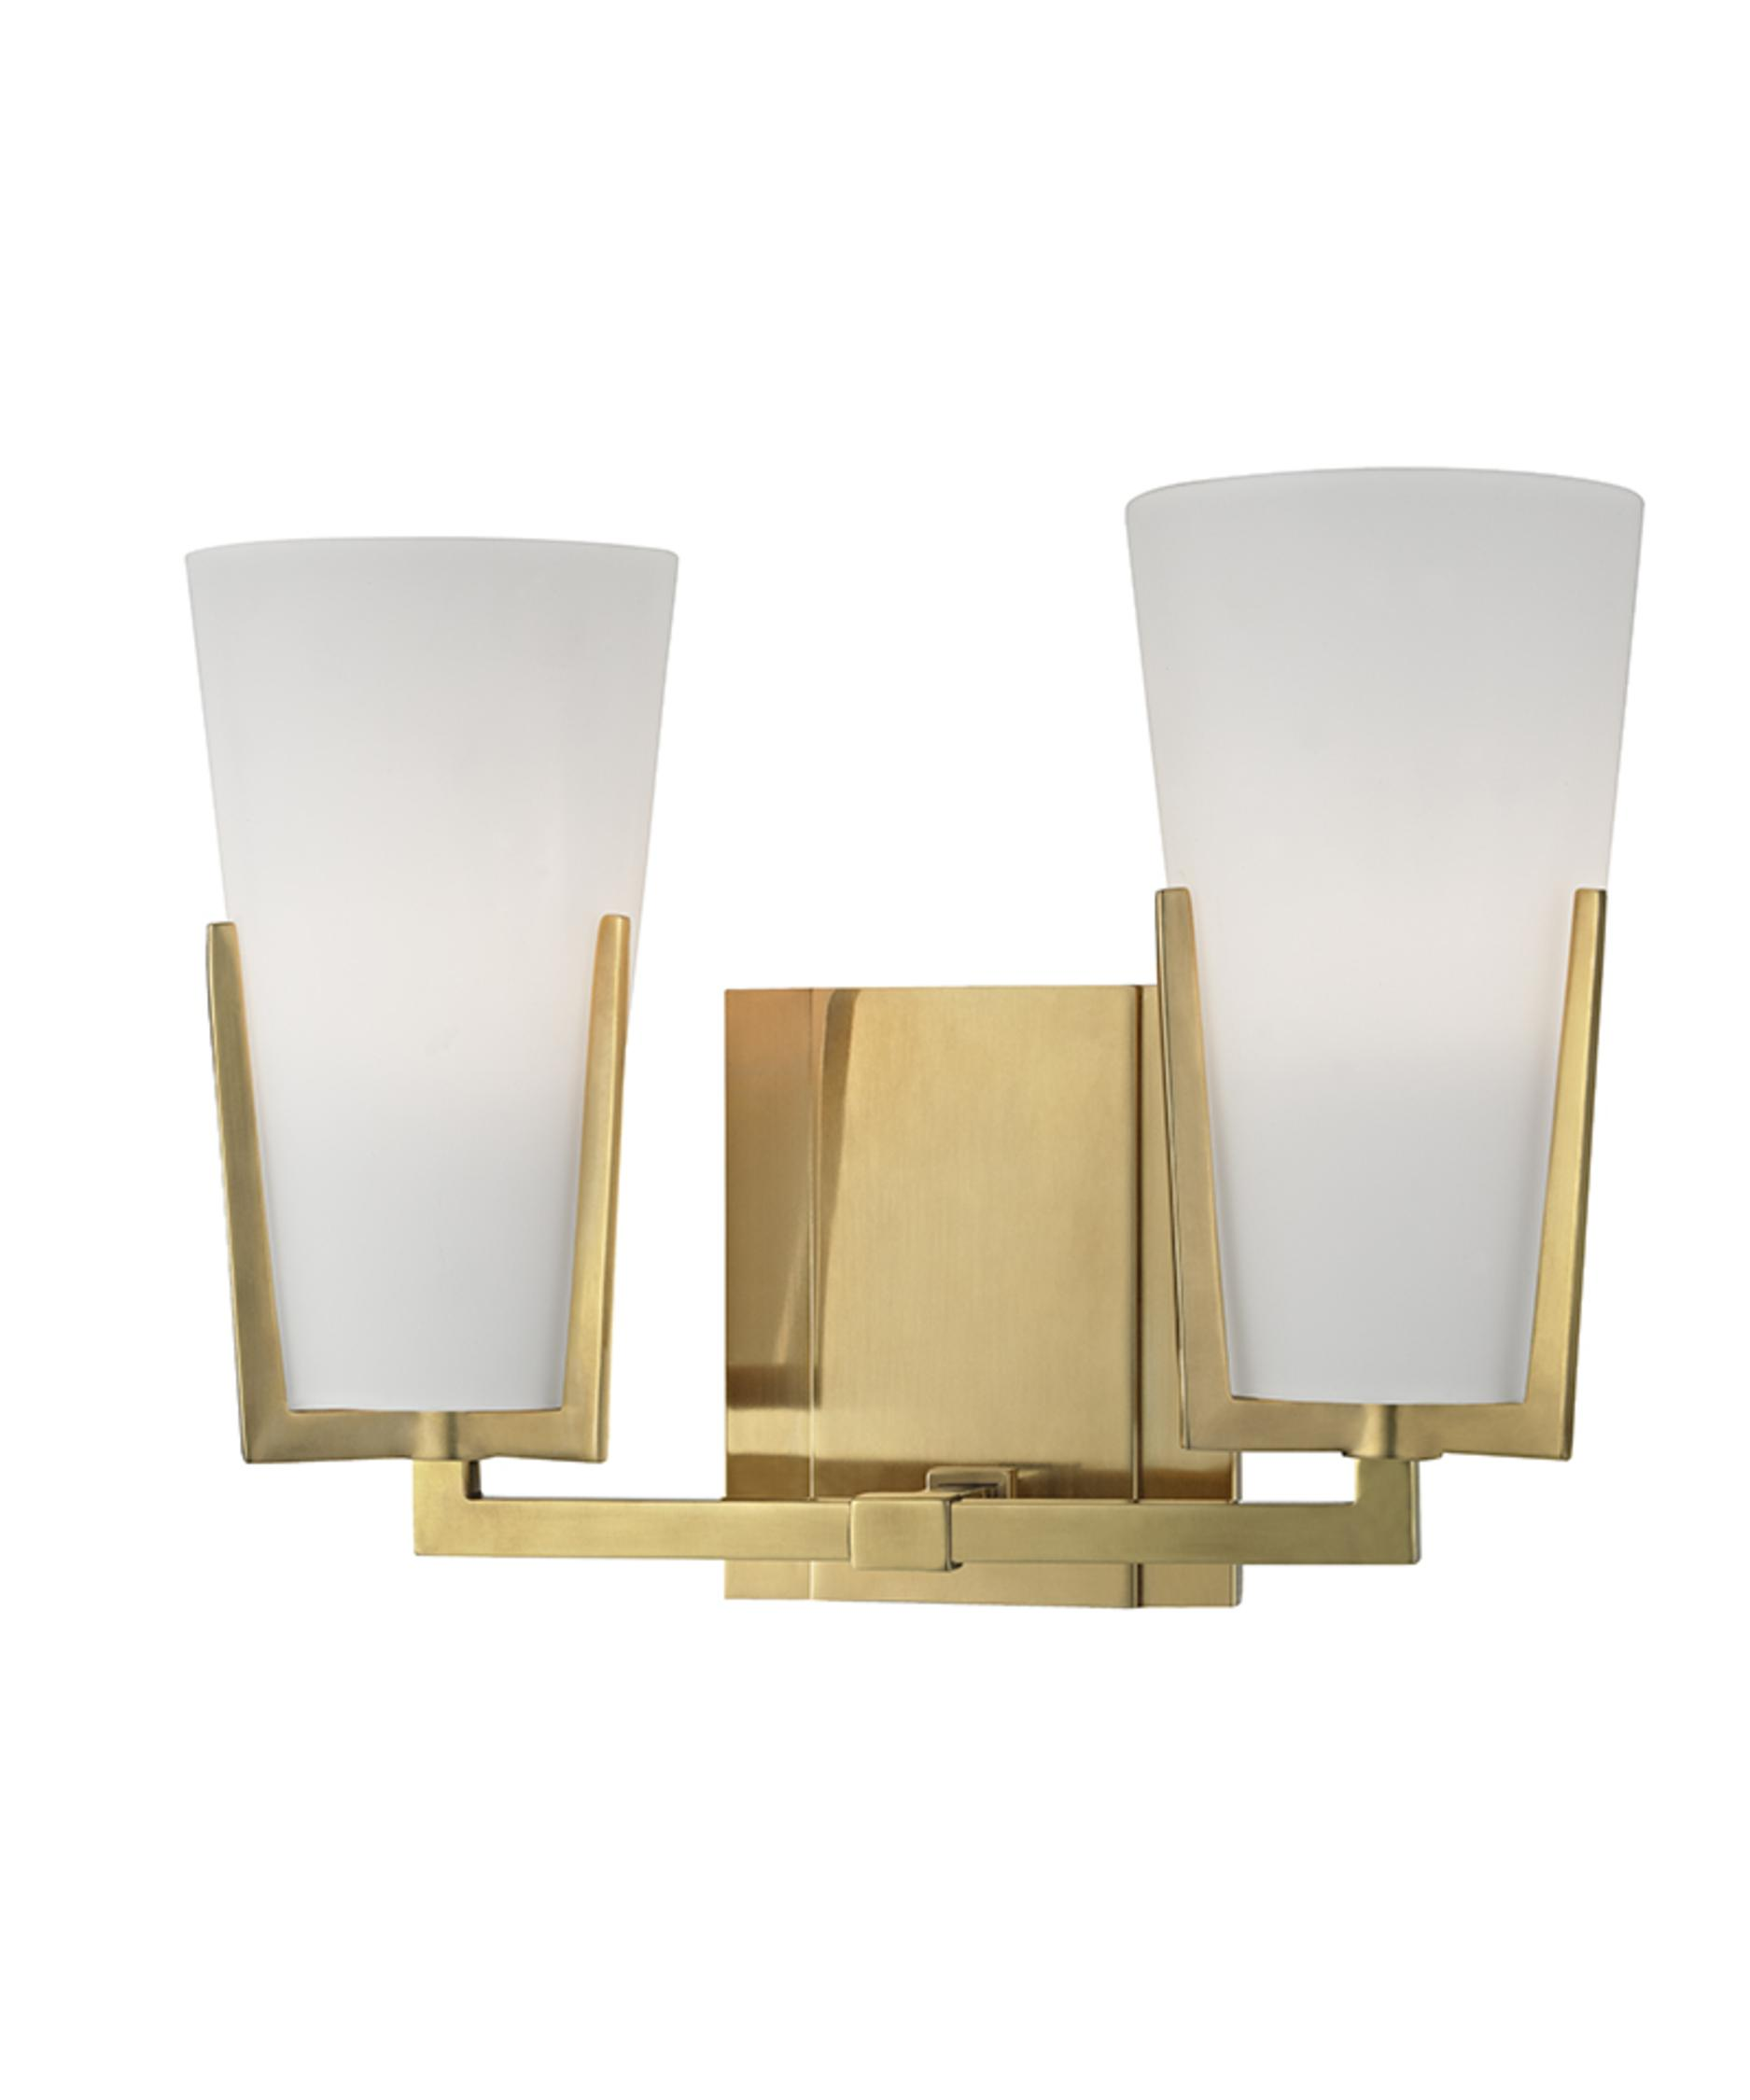 Bathroom Vanity Lights Brass hudson valley 1802 upton 12 inch wide bath vanity light | capitol